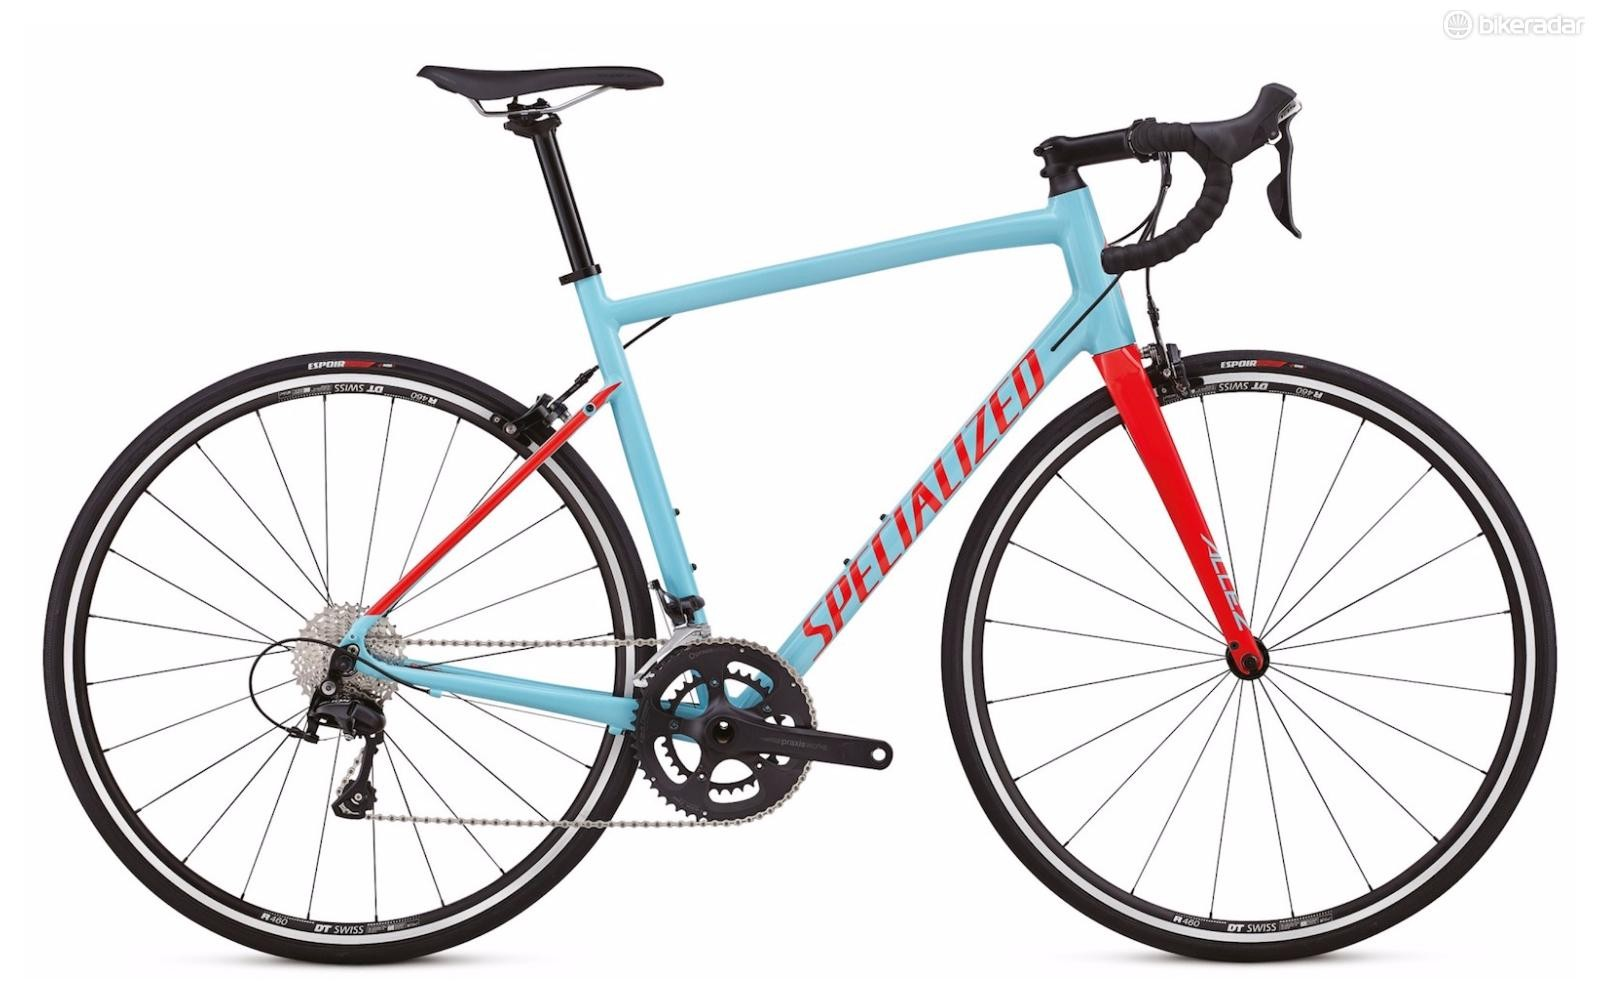 Specialized has recalled approximately 13,000 model year 2018 Allez, Allez Sport and Allez Elite models